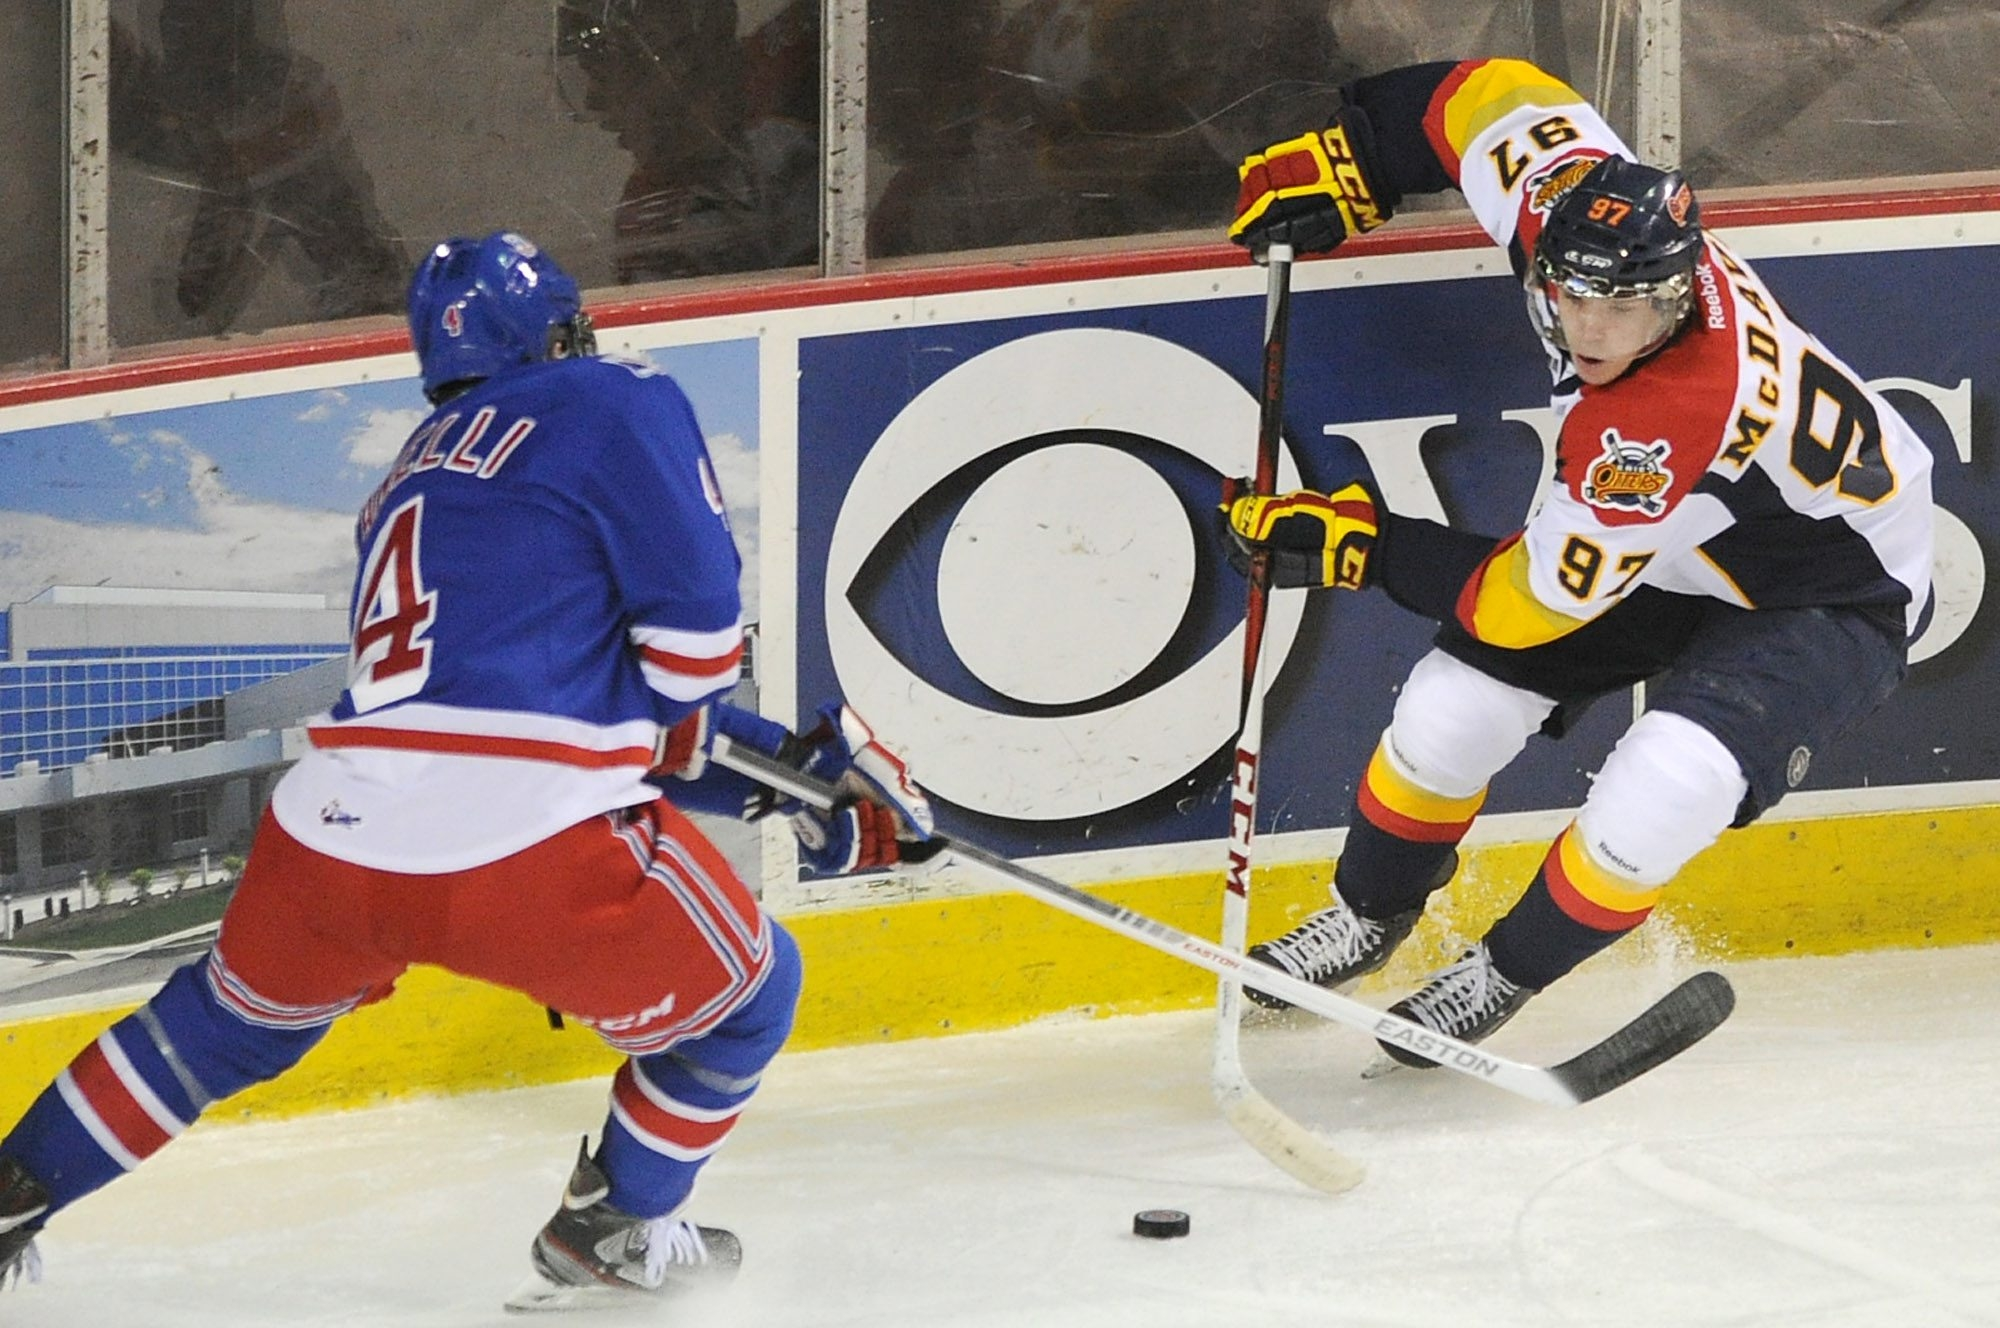 Connor McDavid of the OHL's Erie Otters has 32 points in 26 games.